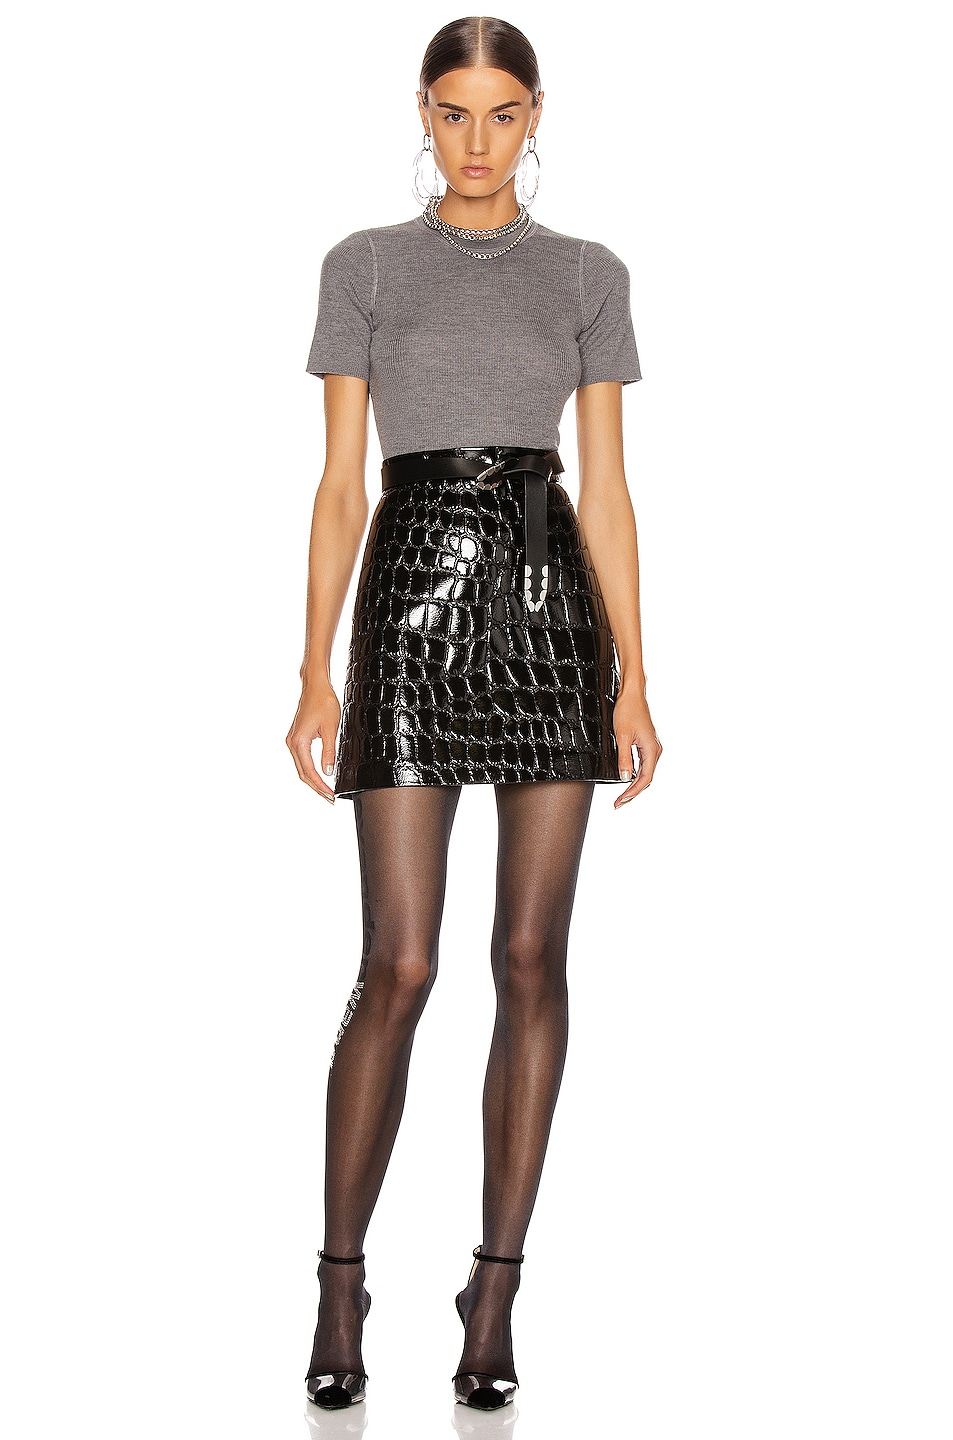 Image 4 of T by Alexander Wang Short Sleeve Knit Top in Heather Grey